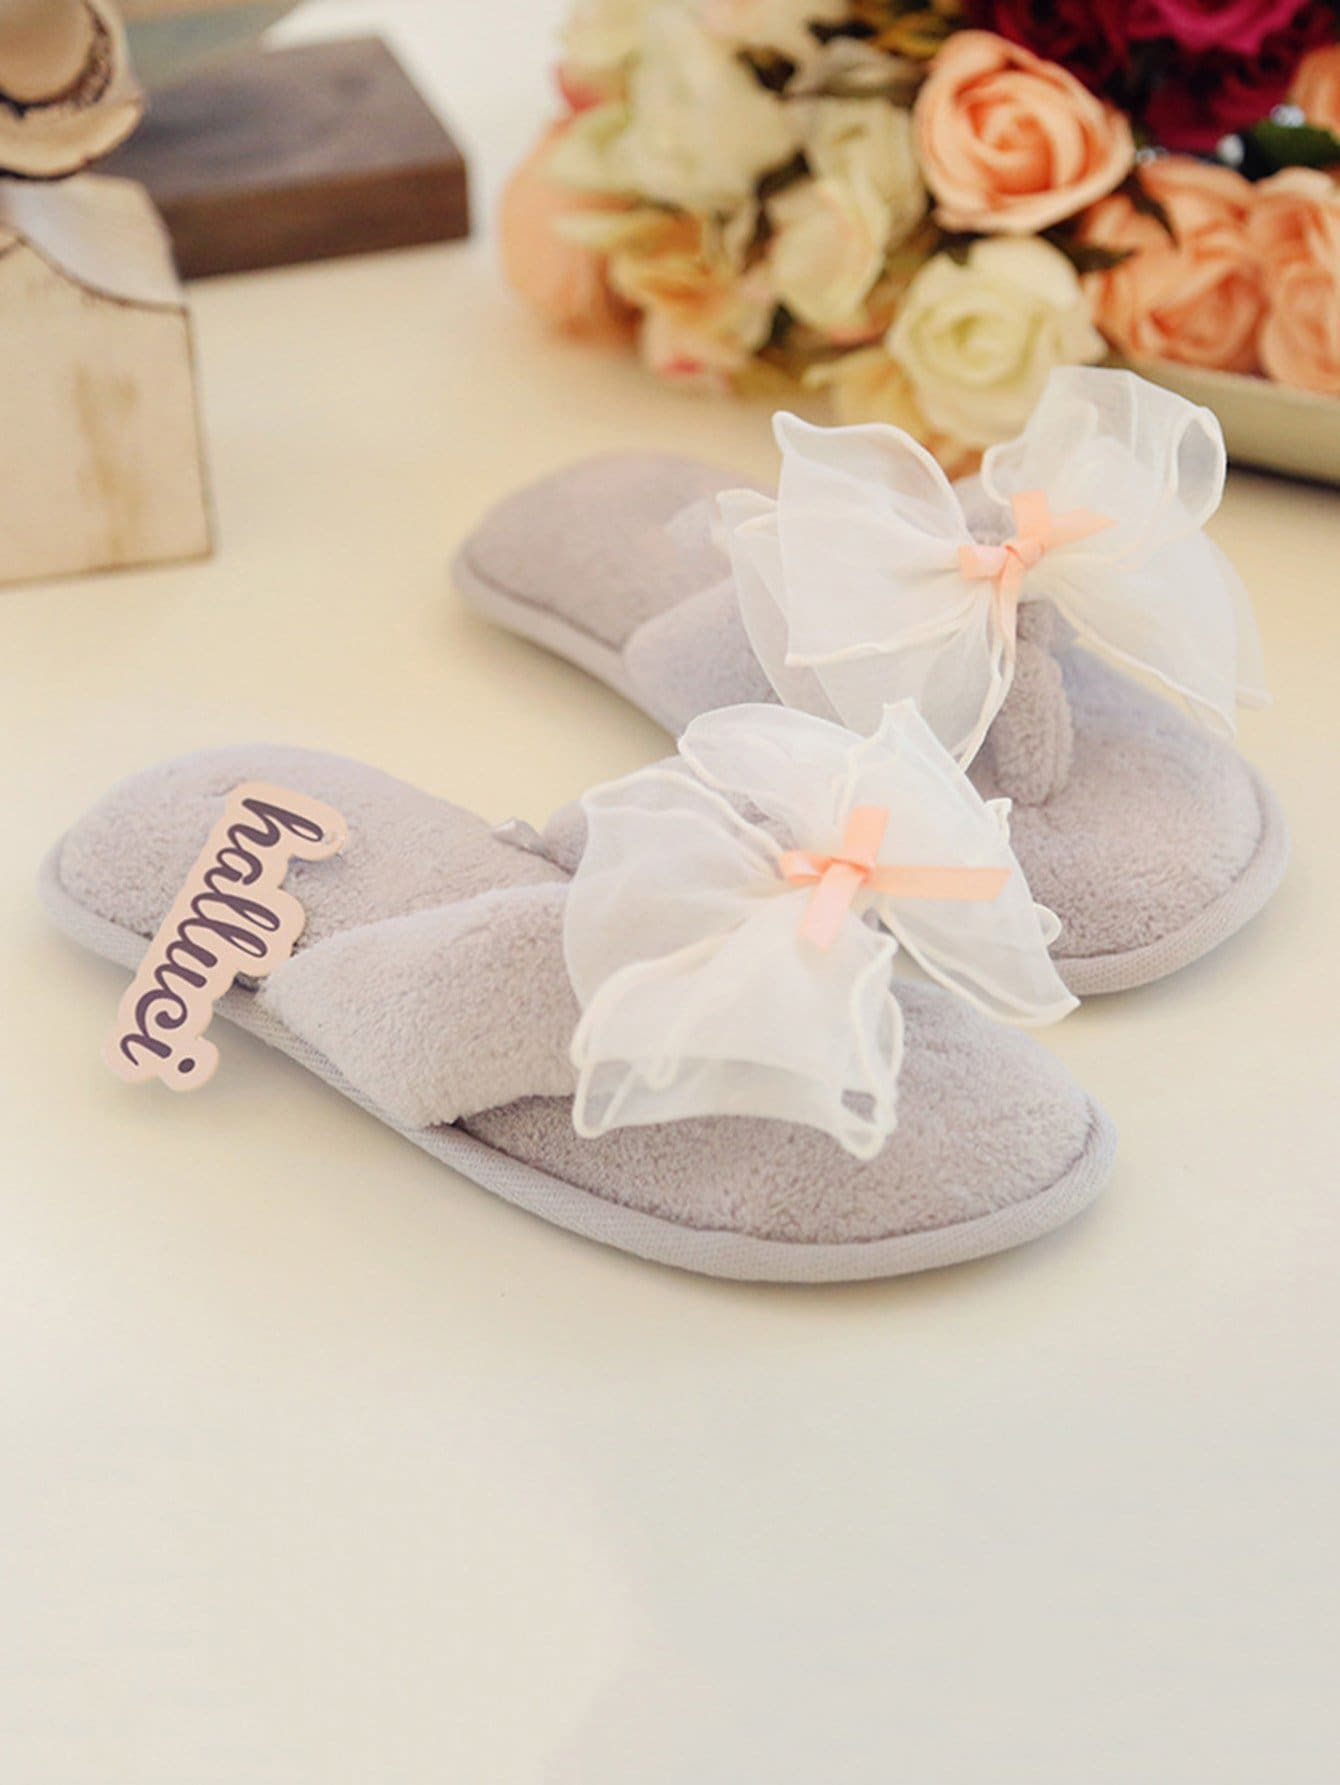 Contrast Mesh Bow Toe Post Slippers мфу ricoh sp 4510sf